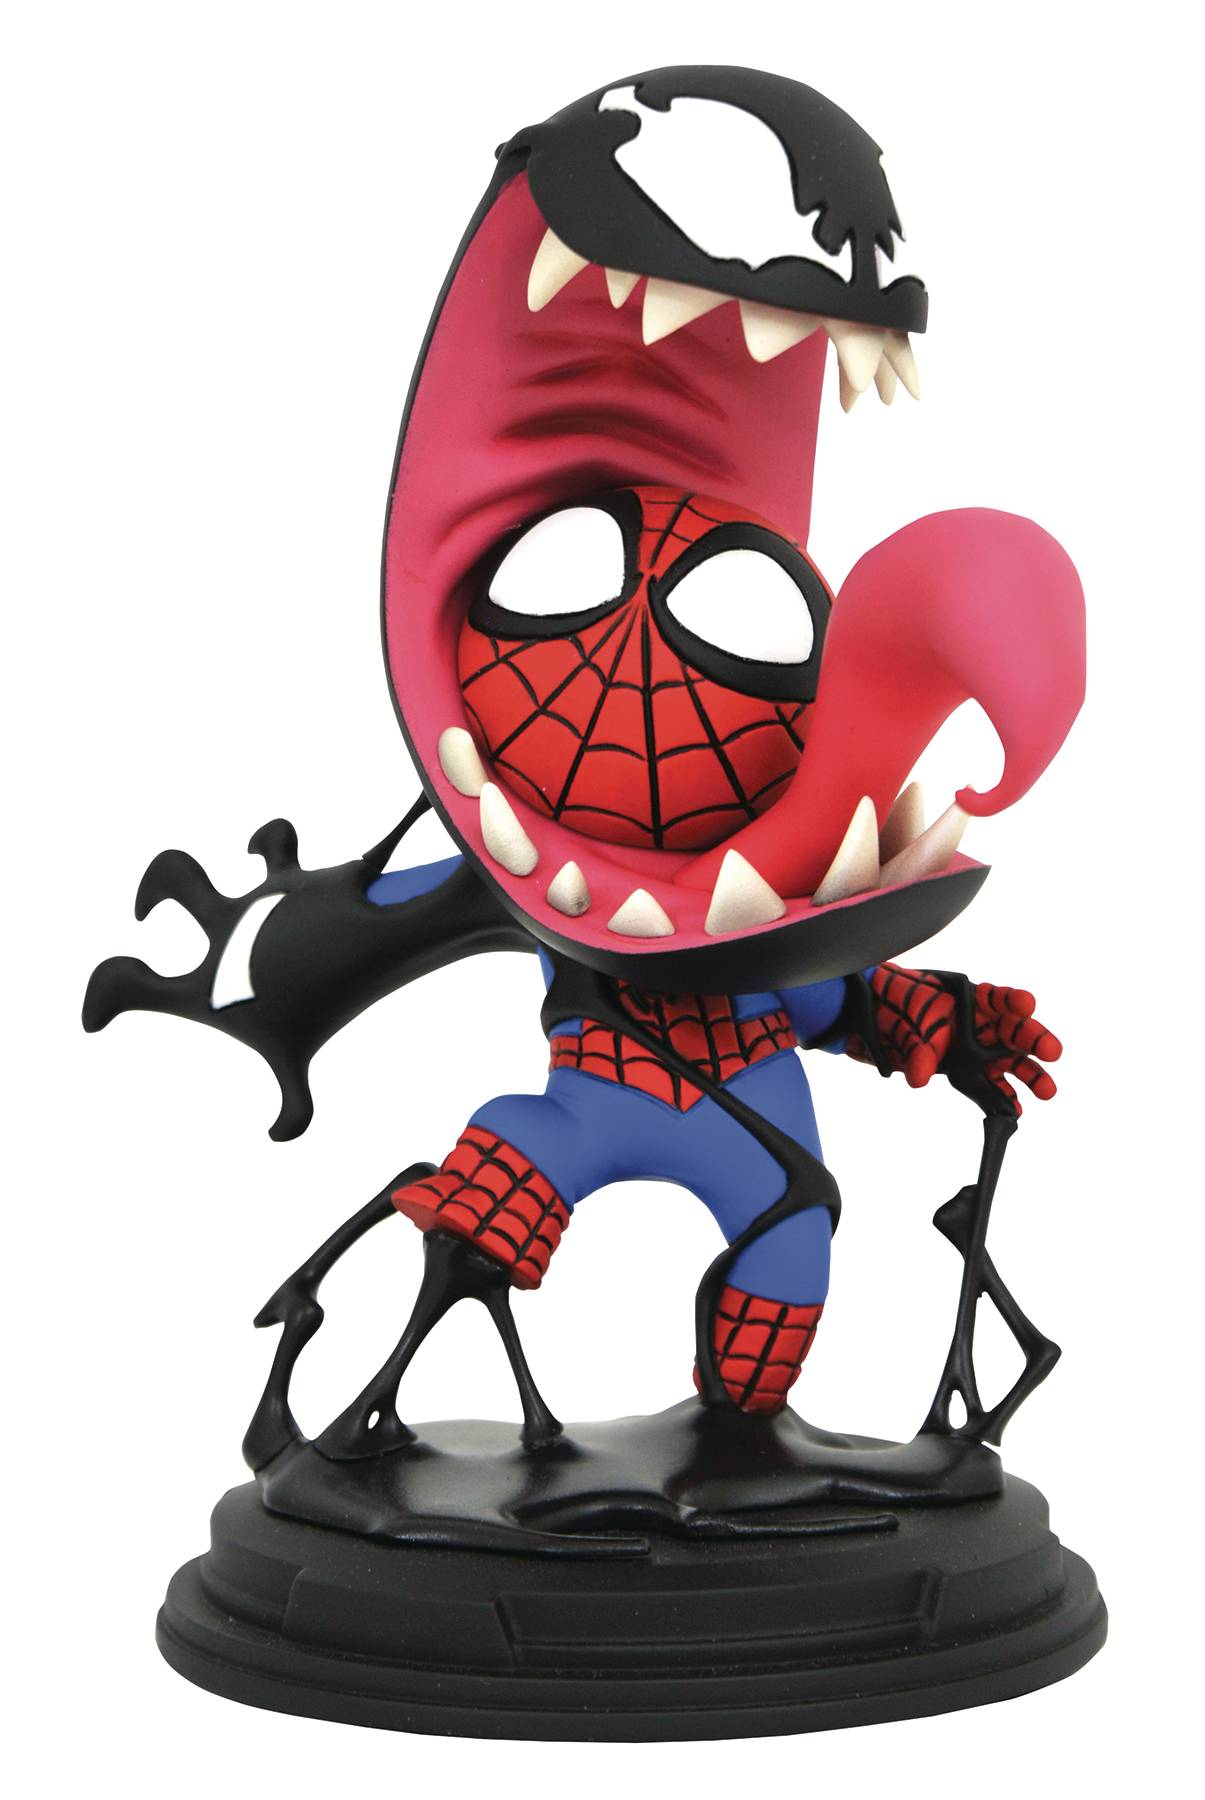 Diamond Marvel Venom & Spider-Man Animated Statue